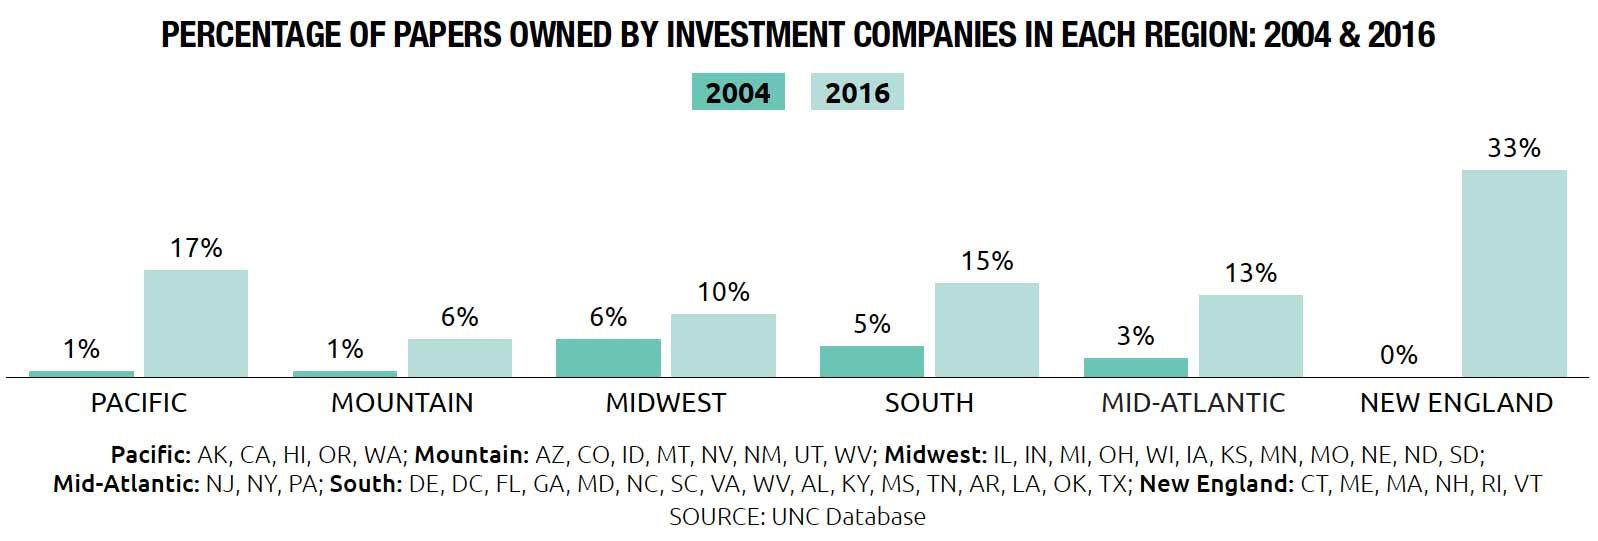 Percentage of Newspapers owned by Investment Companies in U.S. Regions 2004 & 2016